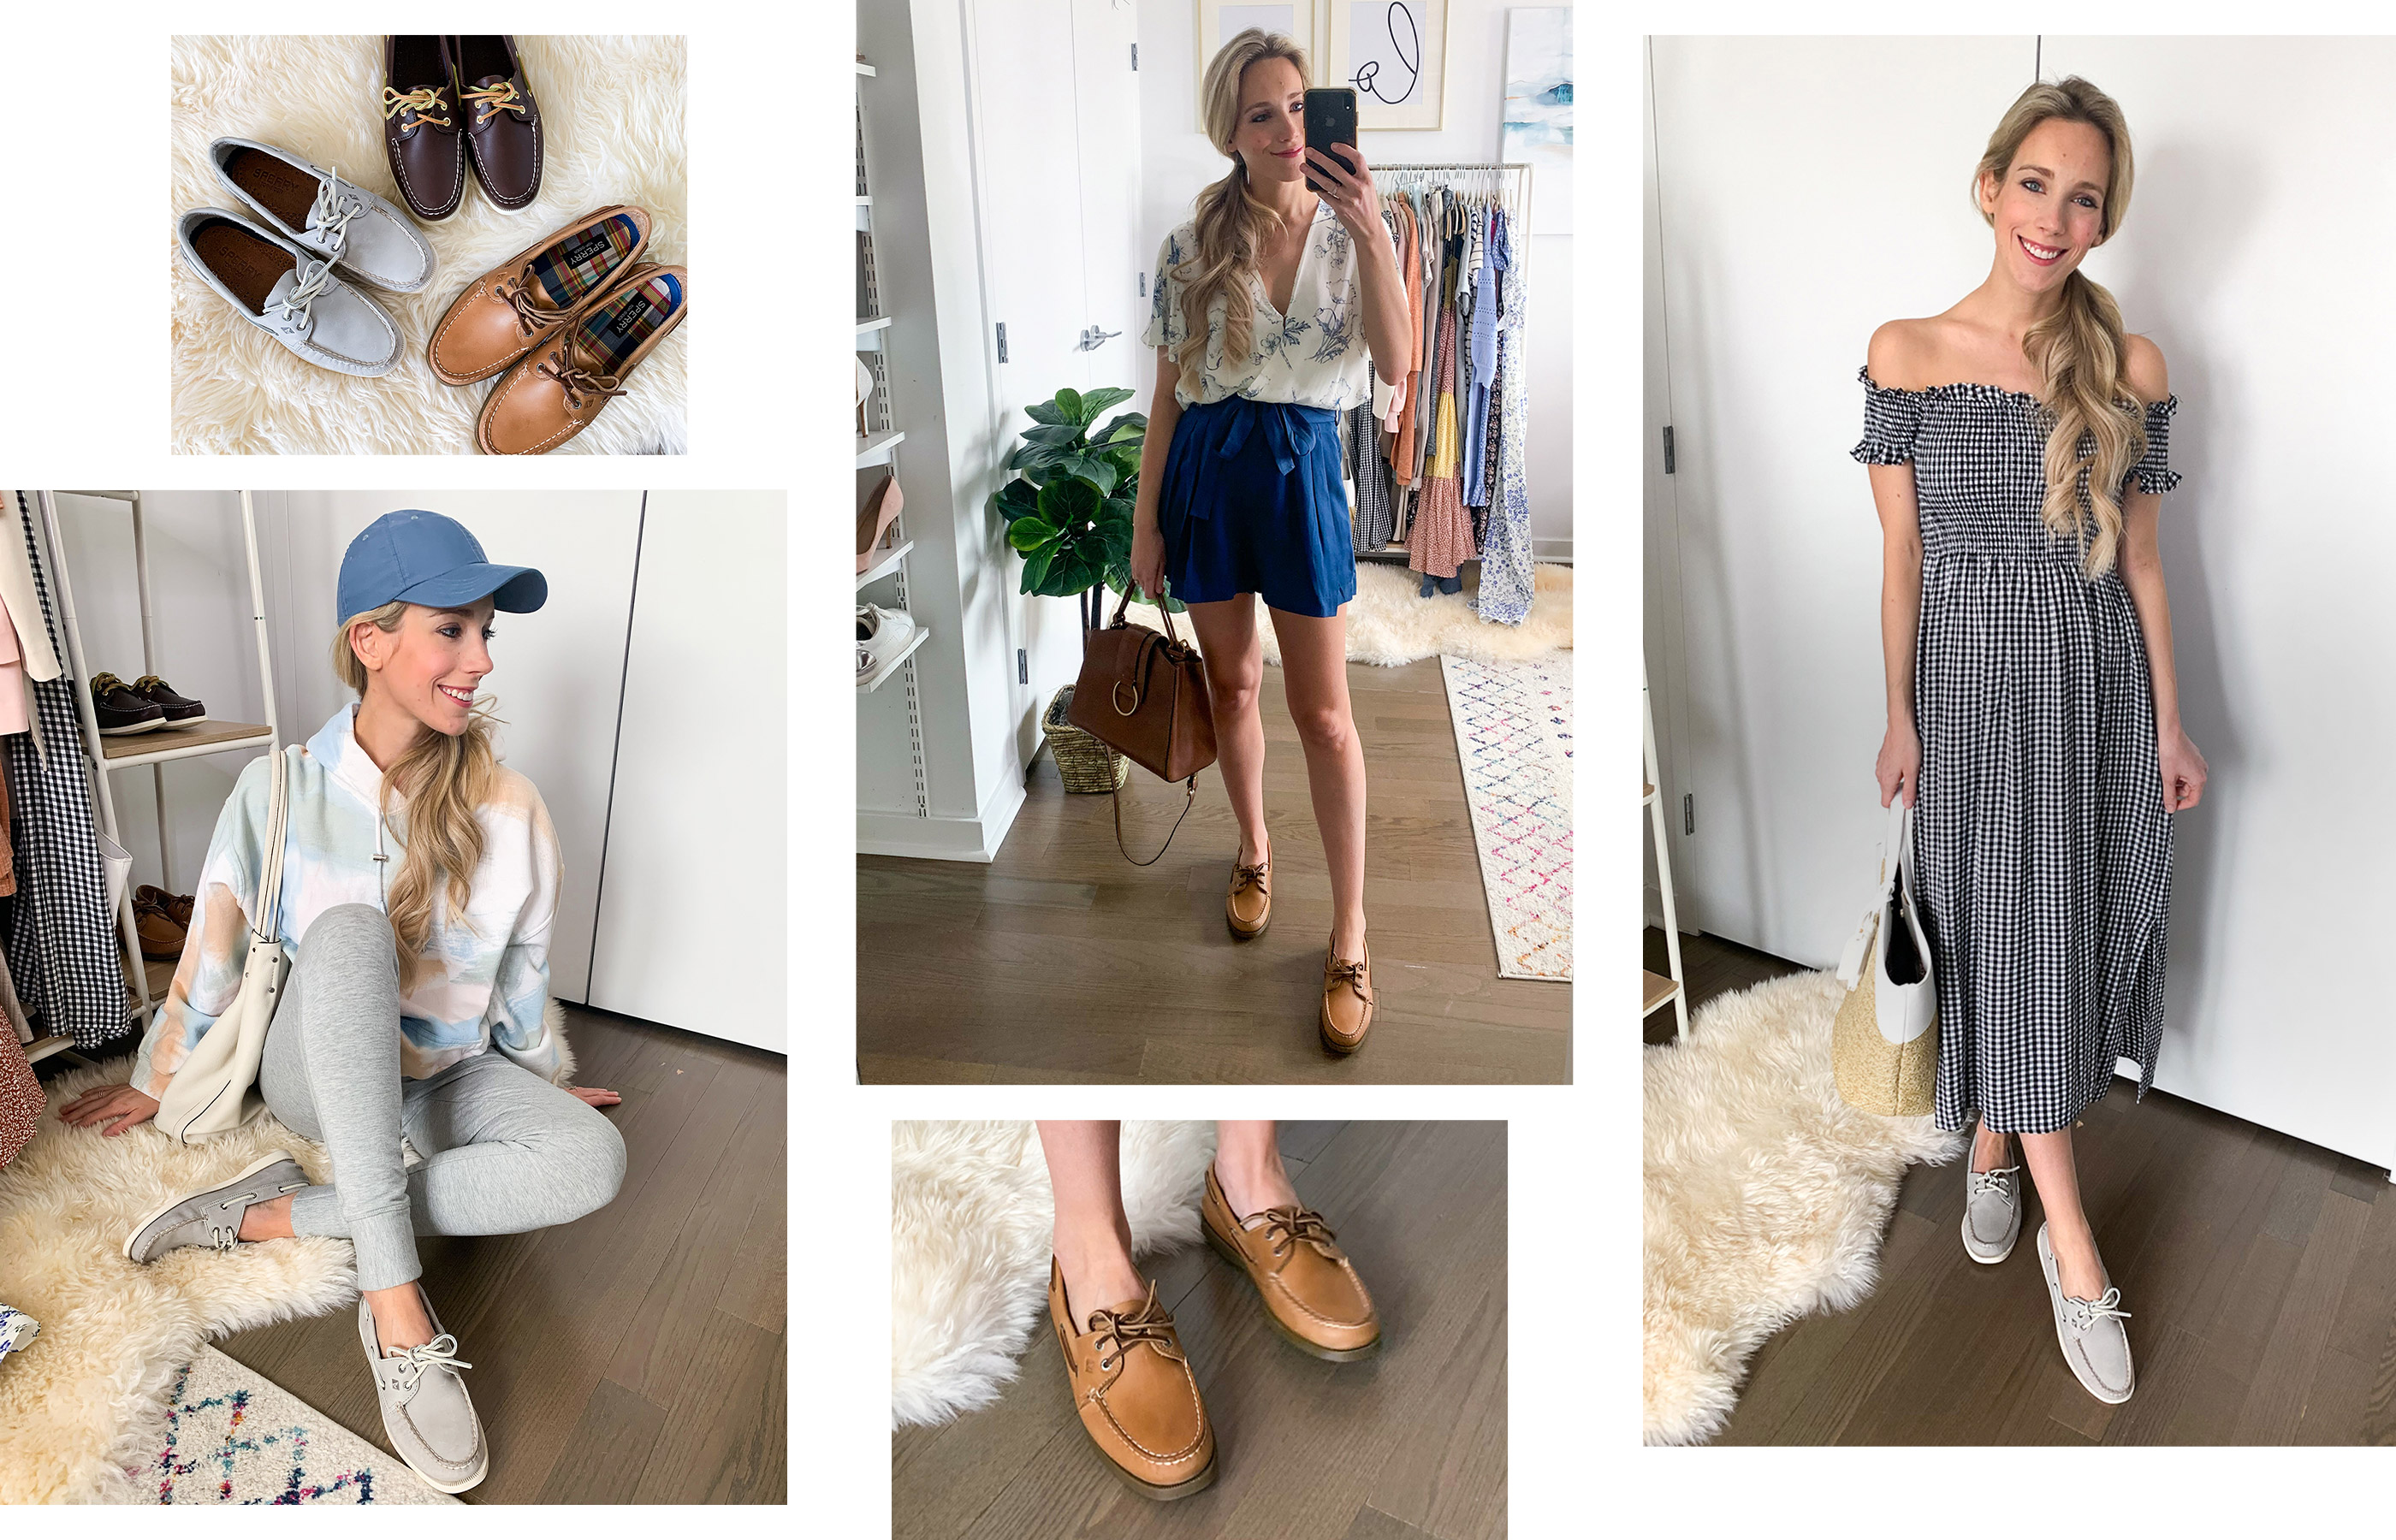 A gallery of Sperry Influencer Katie Manwaring, wearing several Sperry shoe styles.